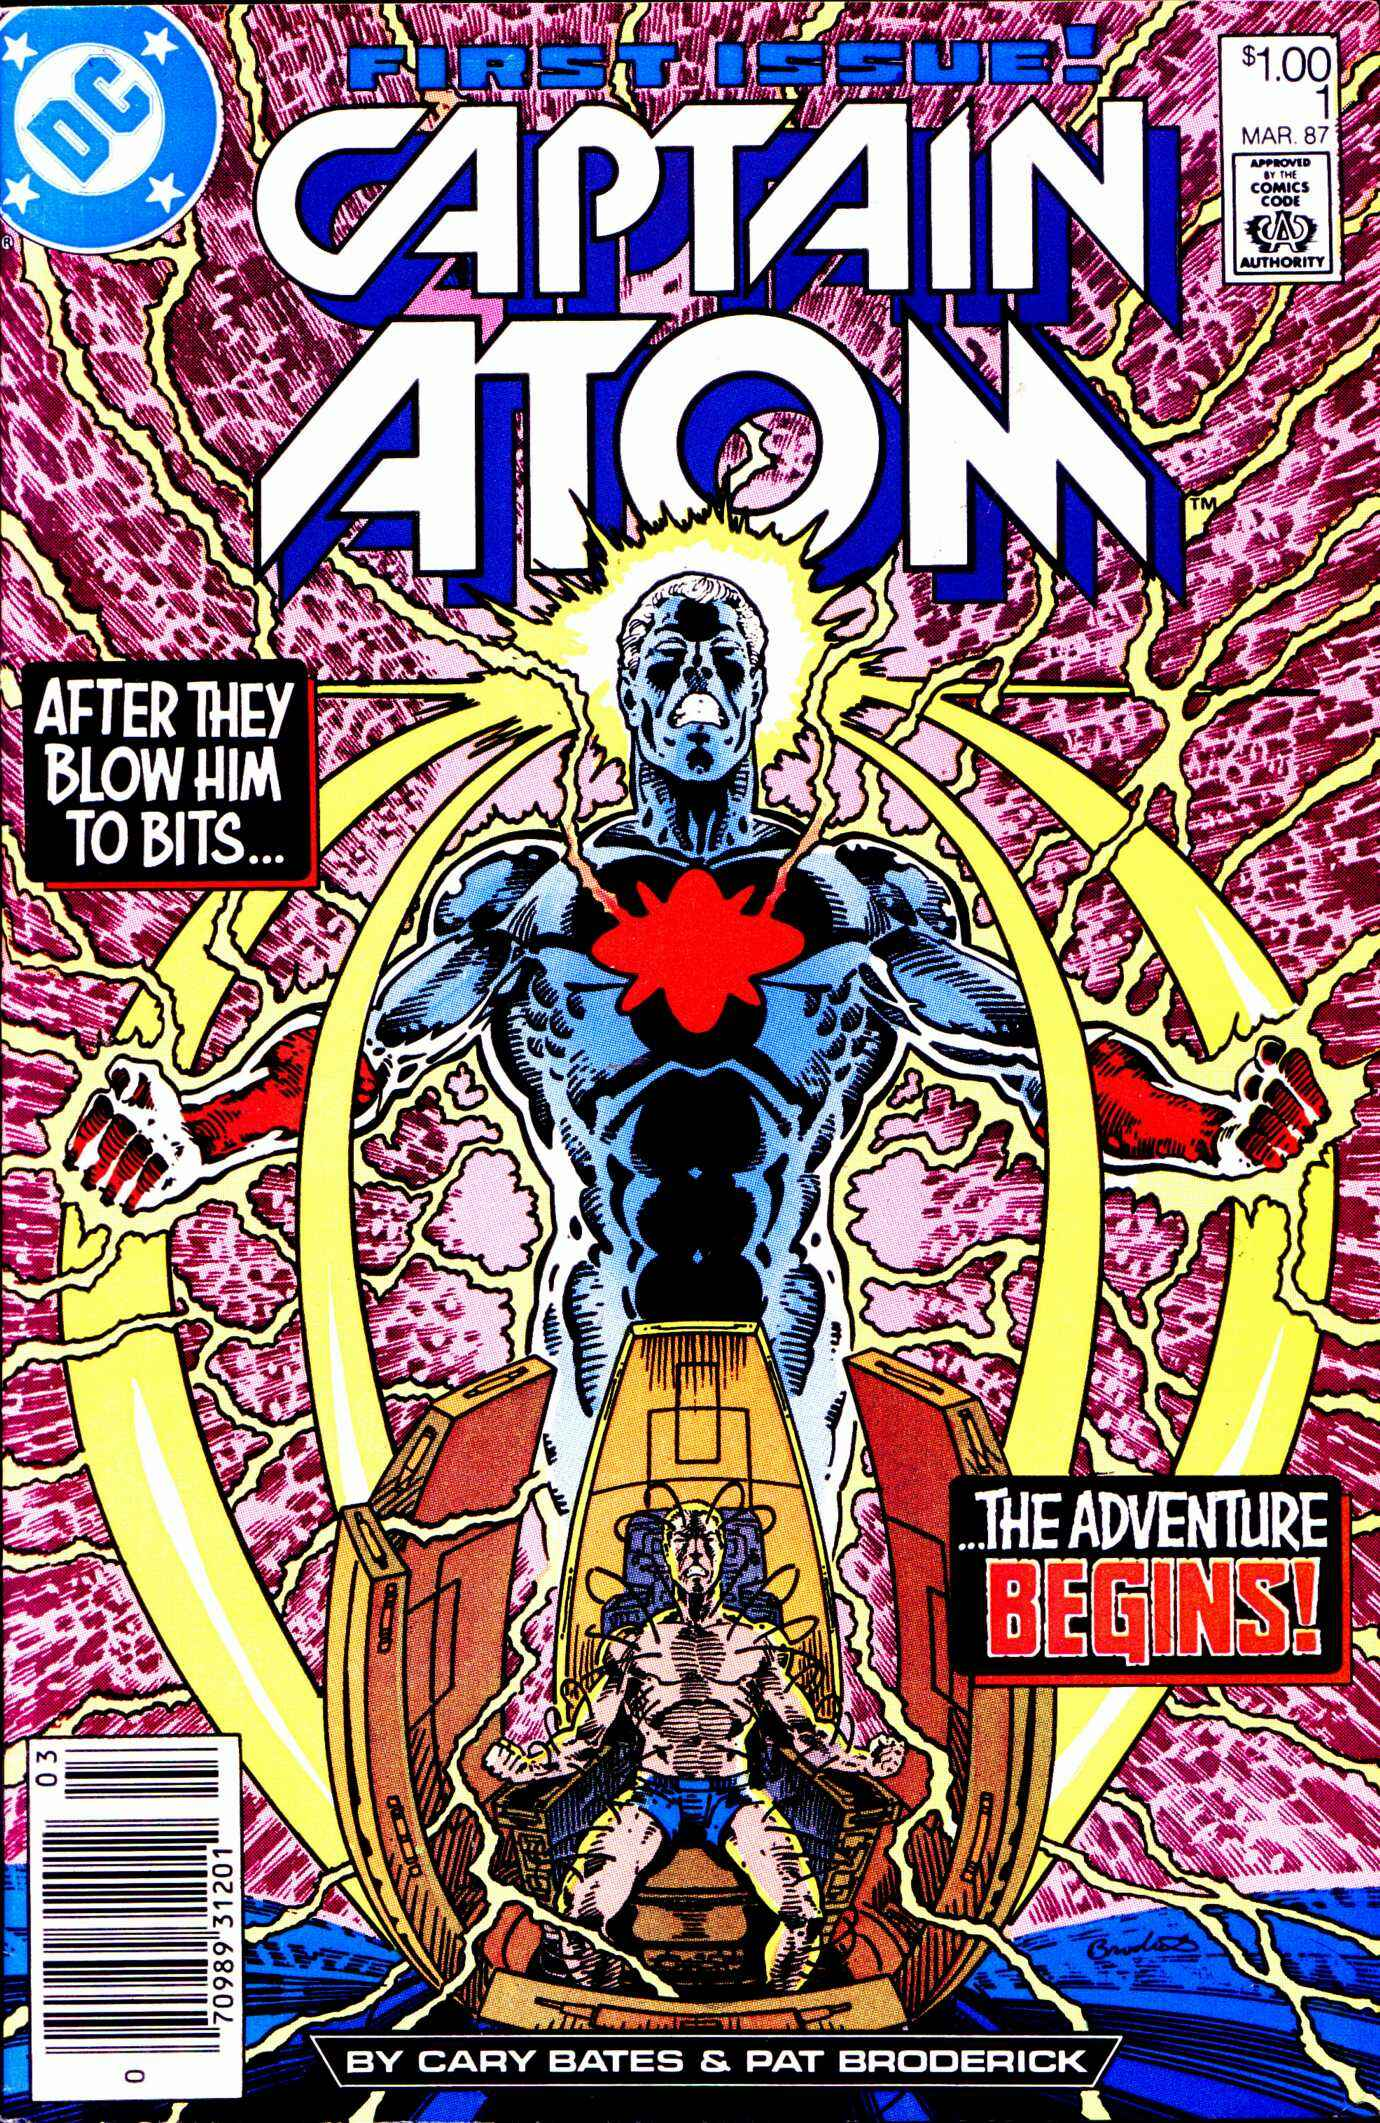 Captain Atom (1987) #1, written by Cary Bates. Cover by Pat Broderick.